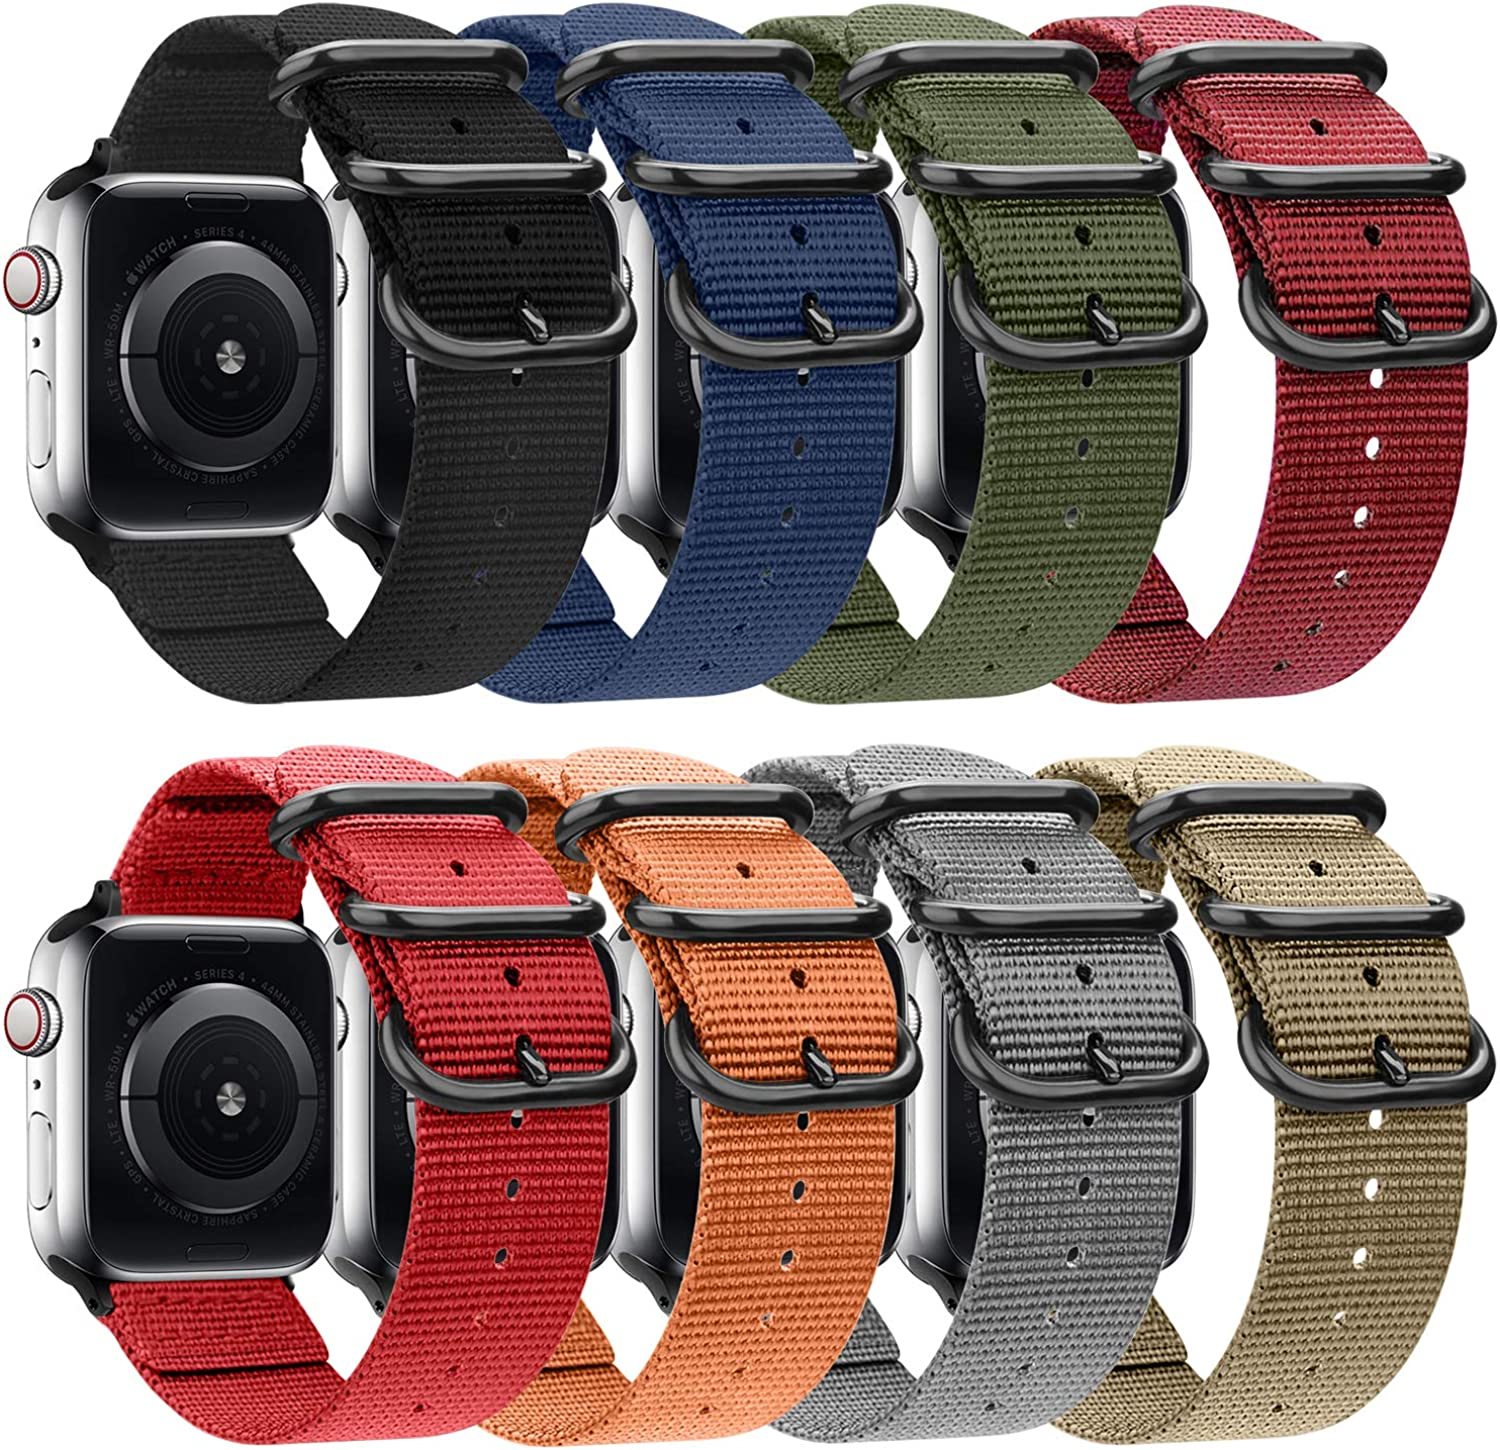 Nylon Band Compatible with Apple Watch Band 44mm 42mm 40mm 38mm, Lightweight Breathable Woven Nylon Sport Wrist Strap with Metal Buckle Compatible 6/5/4/3/2/1/SE